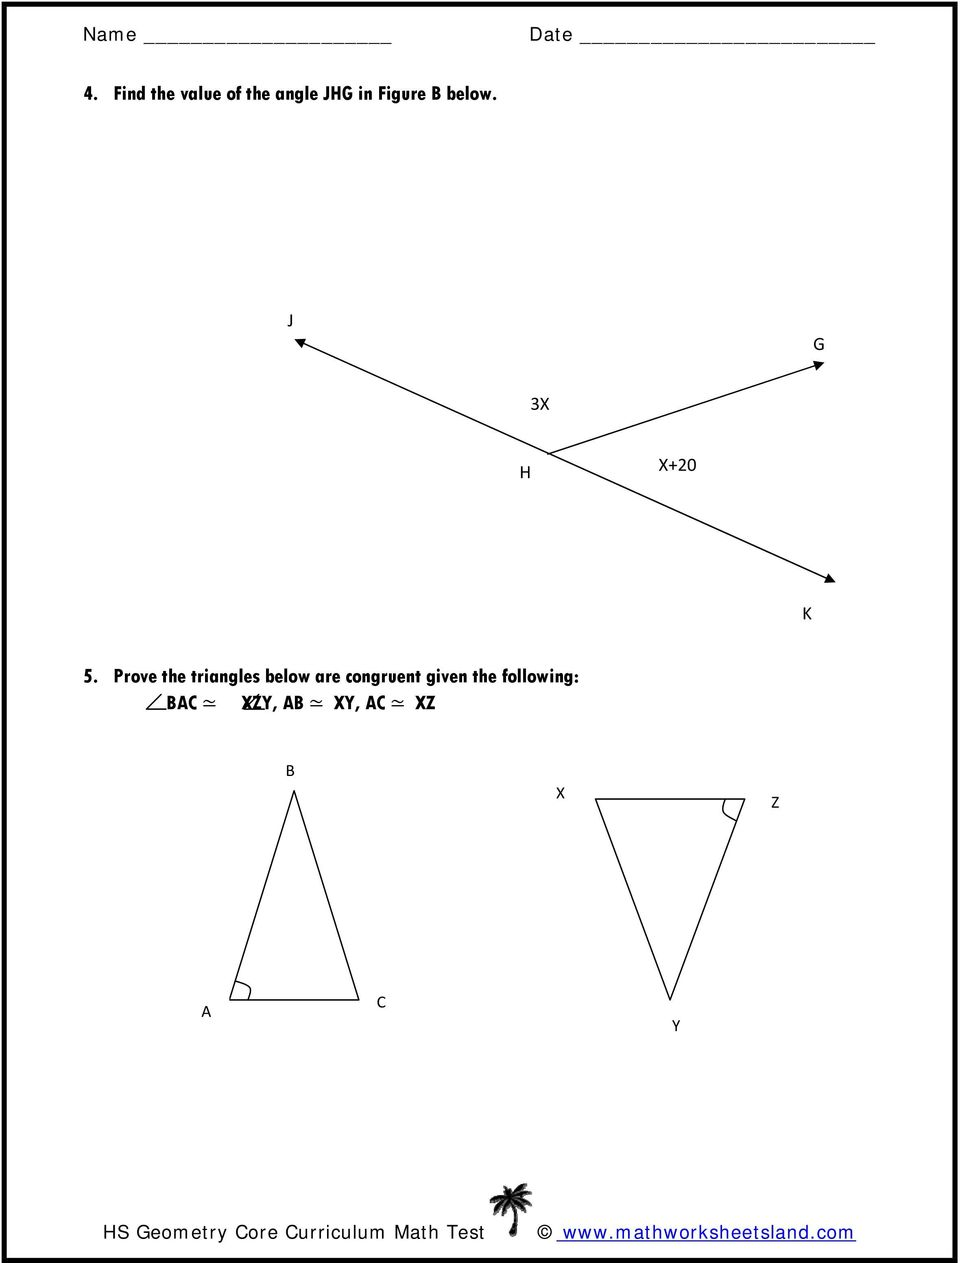 Prove the triangles below are congruent